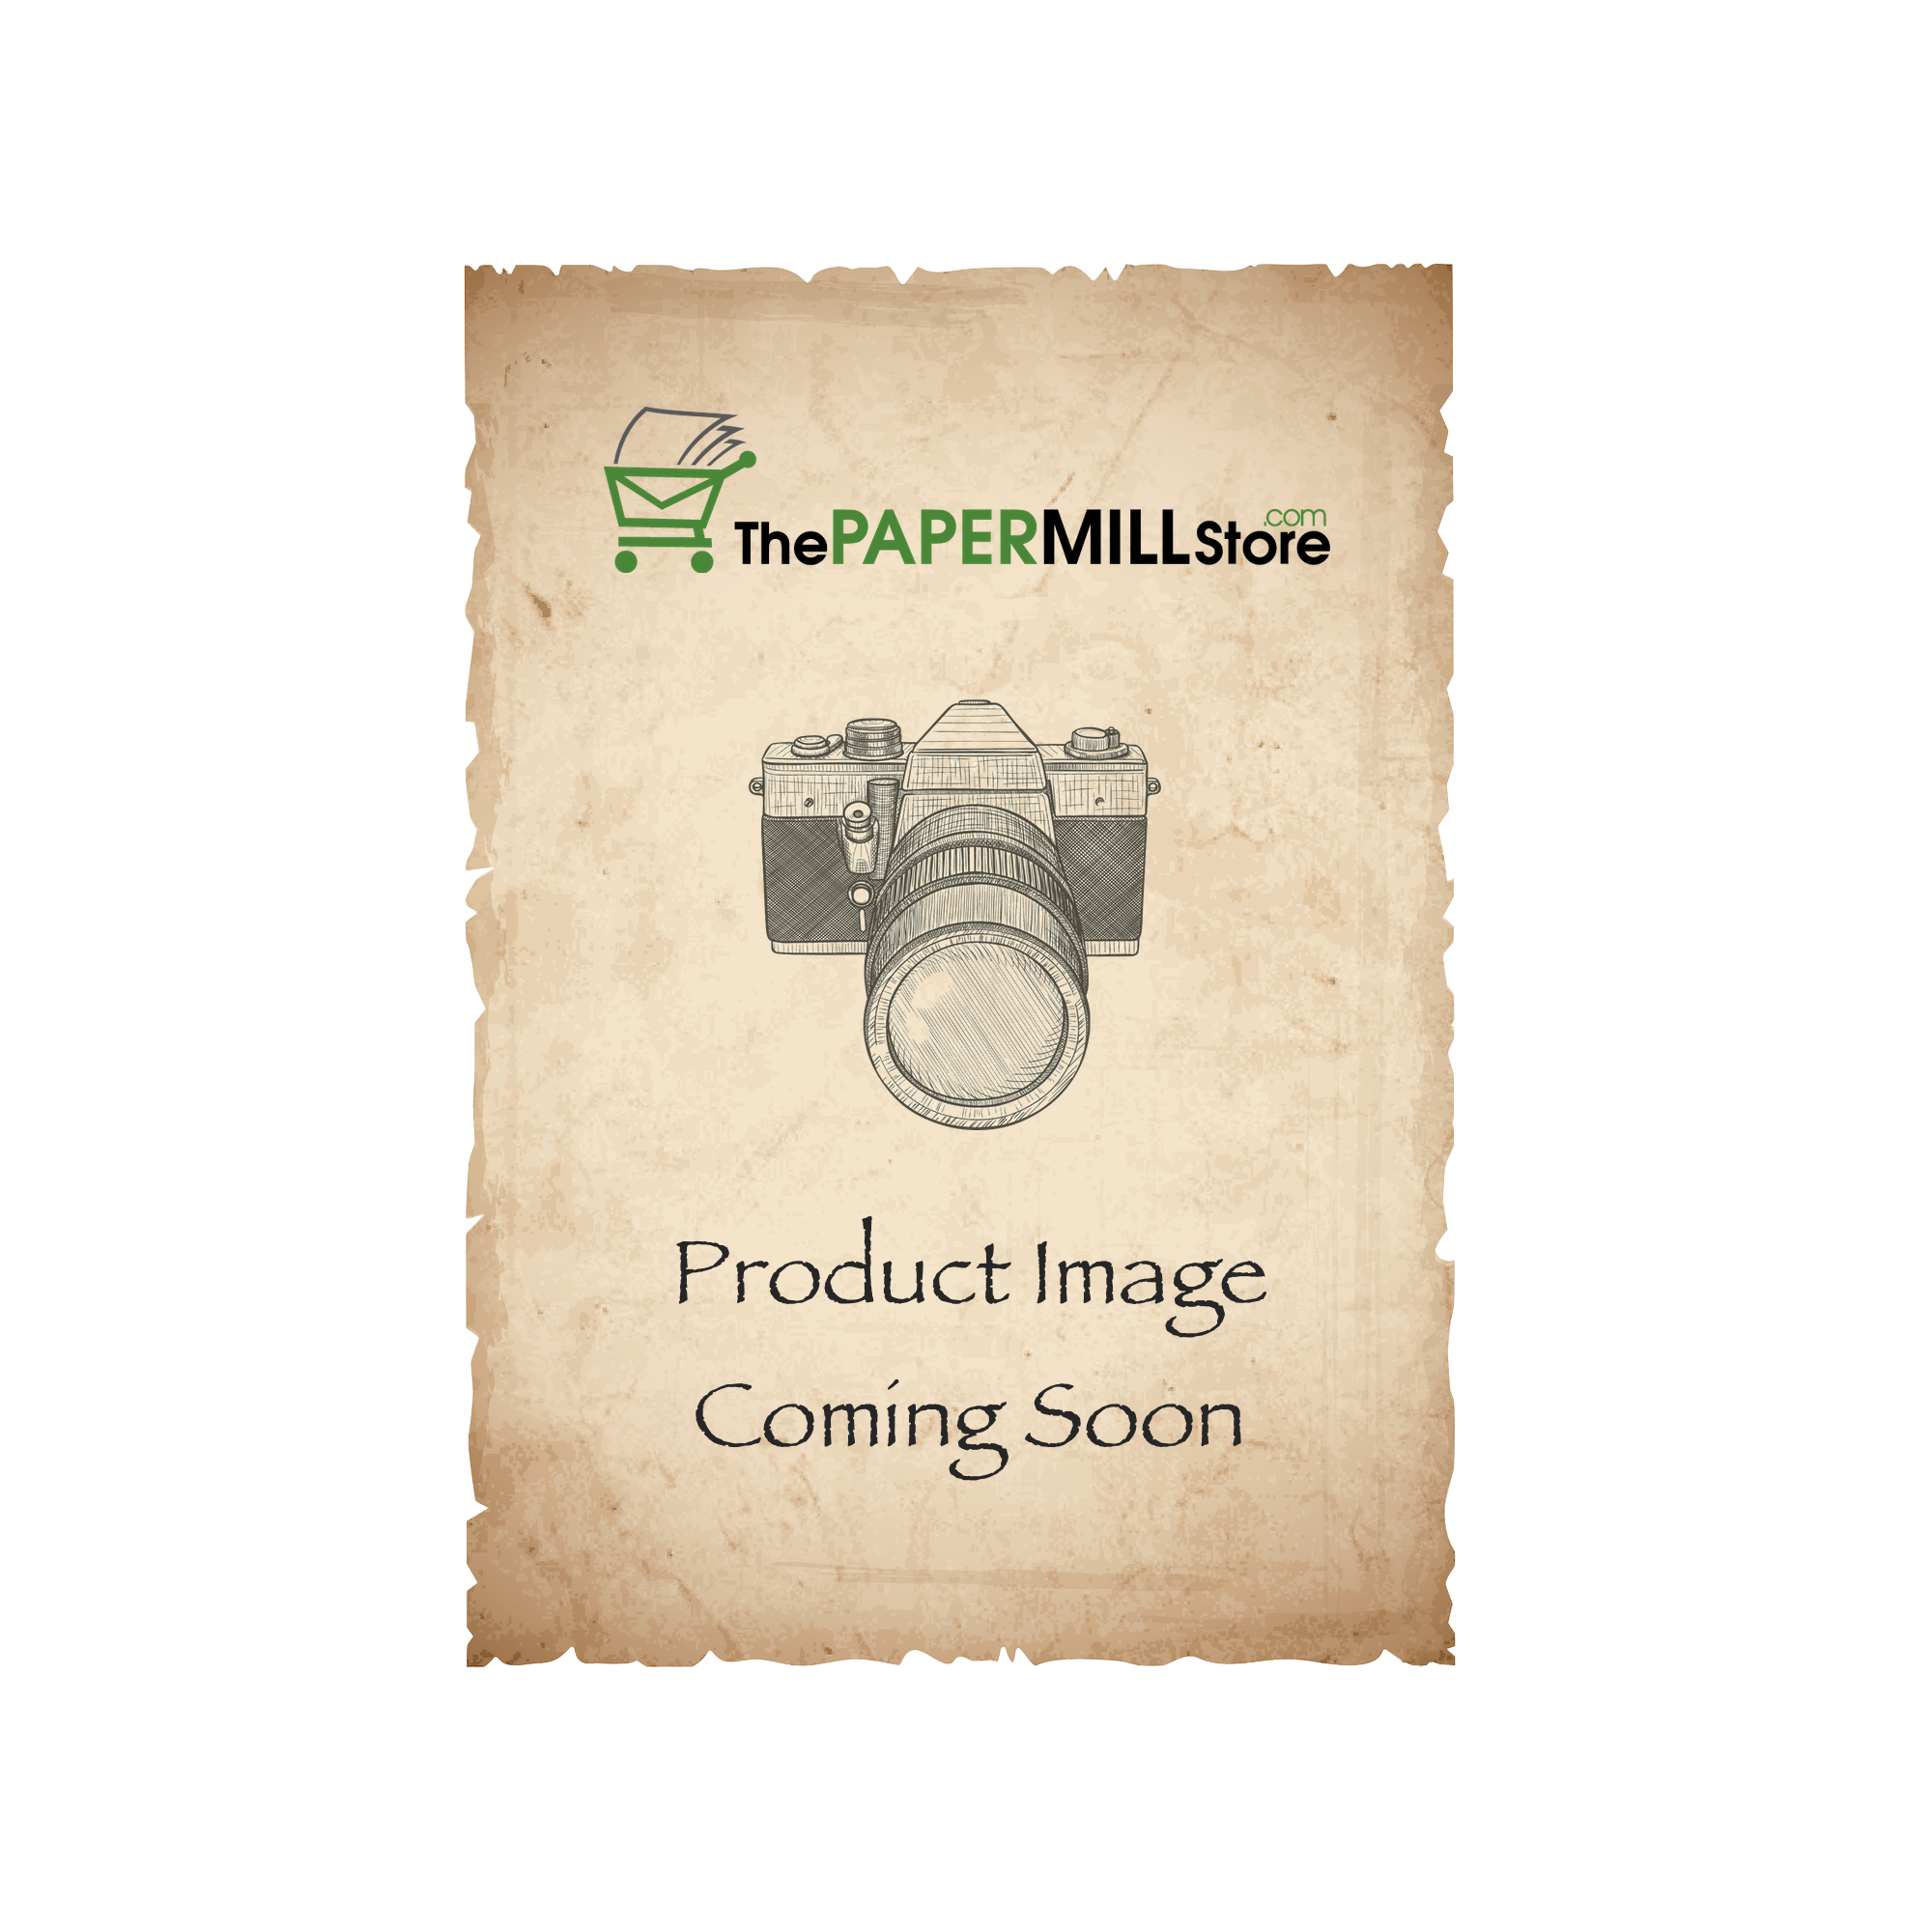 ASPIRE Petallics Beargrass Envelopes - No. 8 Square (8 x 8) 80 lb Text Metallic C/2S 30% Recycled 250 per Box